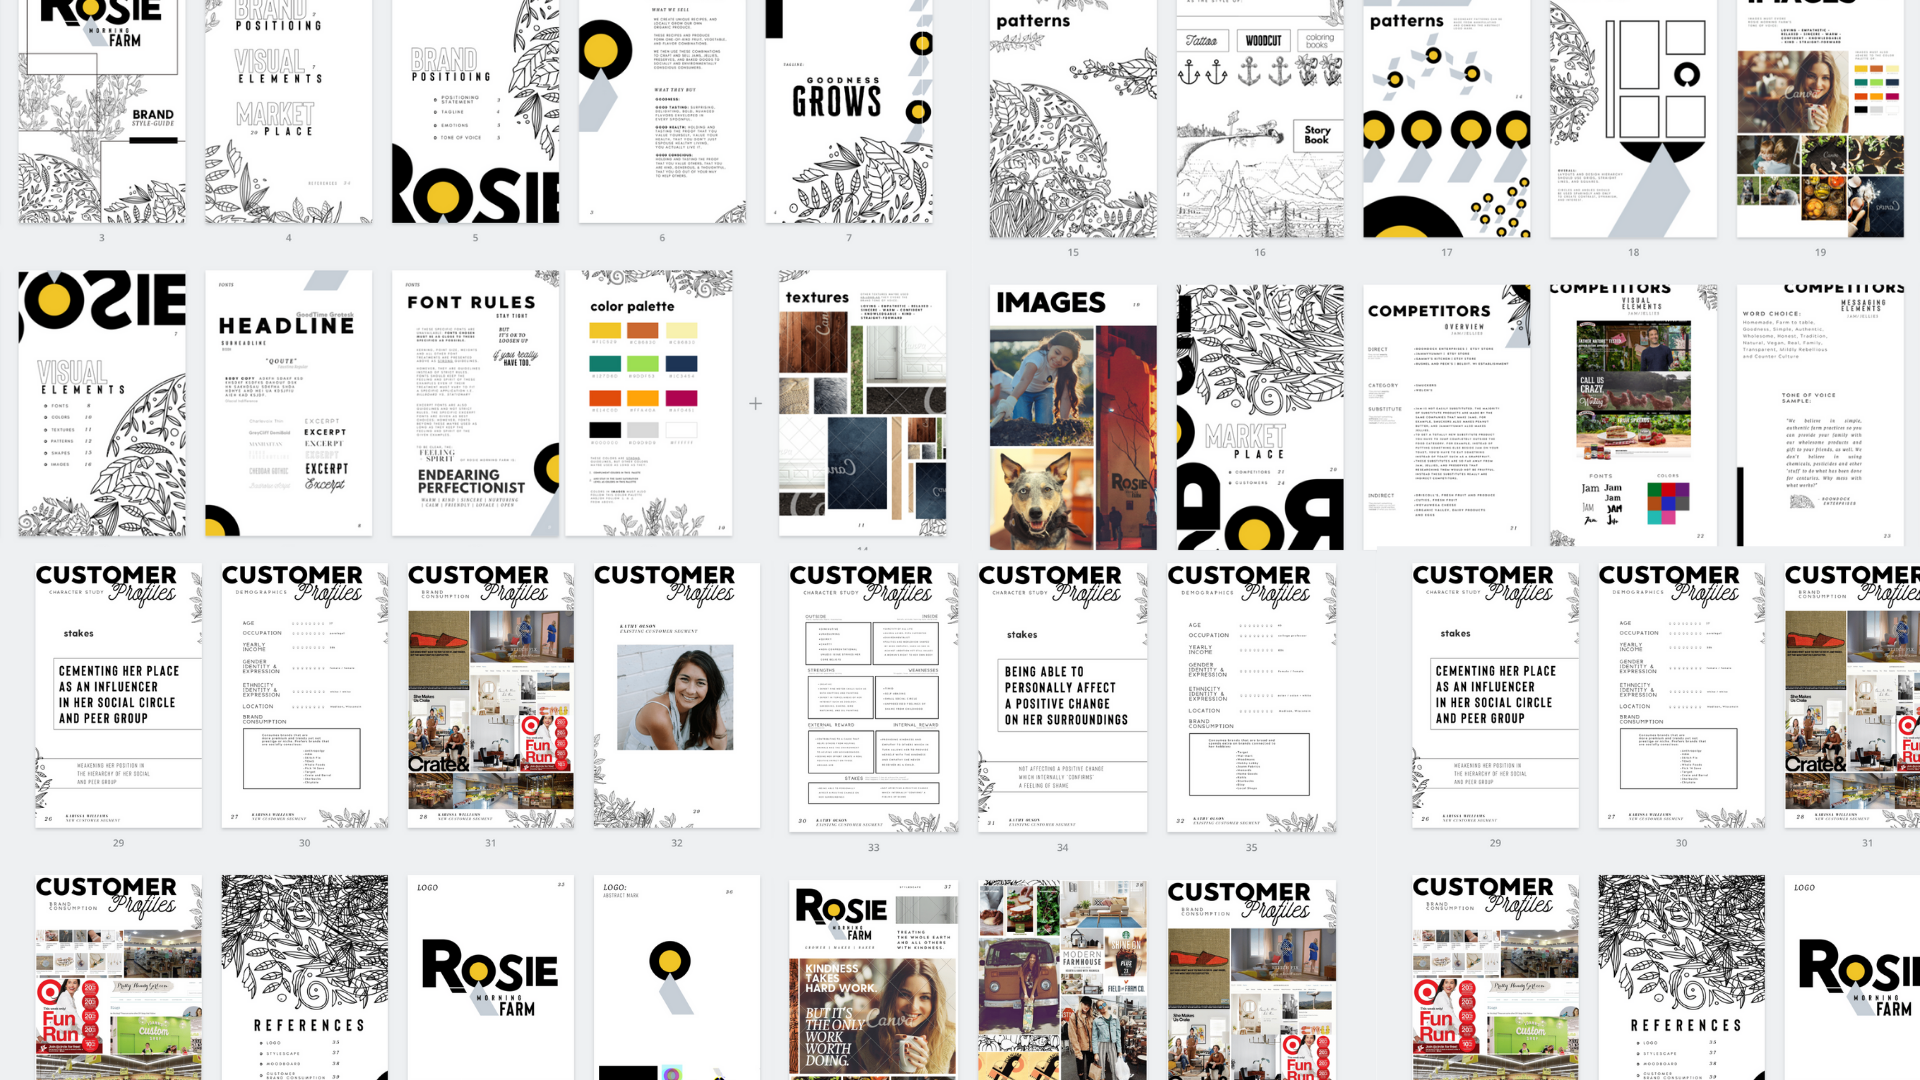 Example of brand styleguide created by Owl Street Studio for Rosie Morning Farm